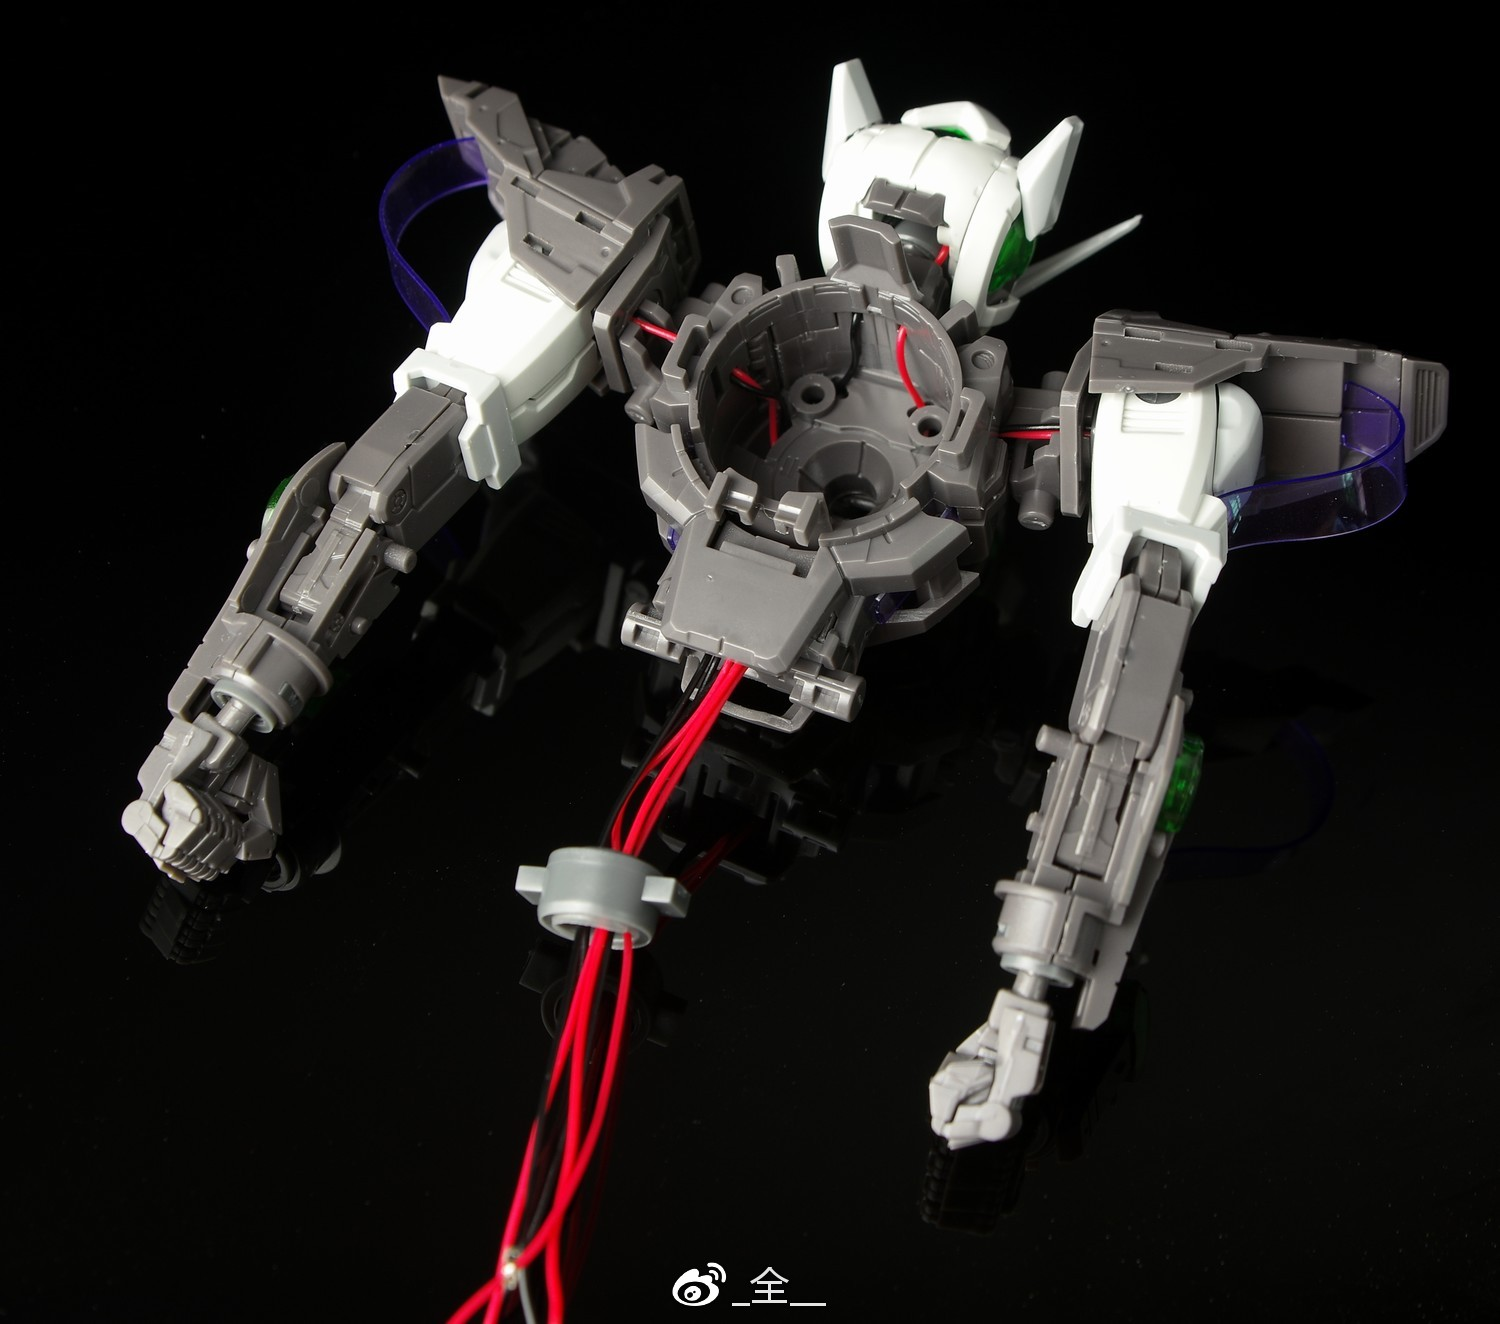 S269_mg_exia_led_hobby_star_inask_026.jpg